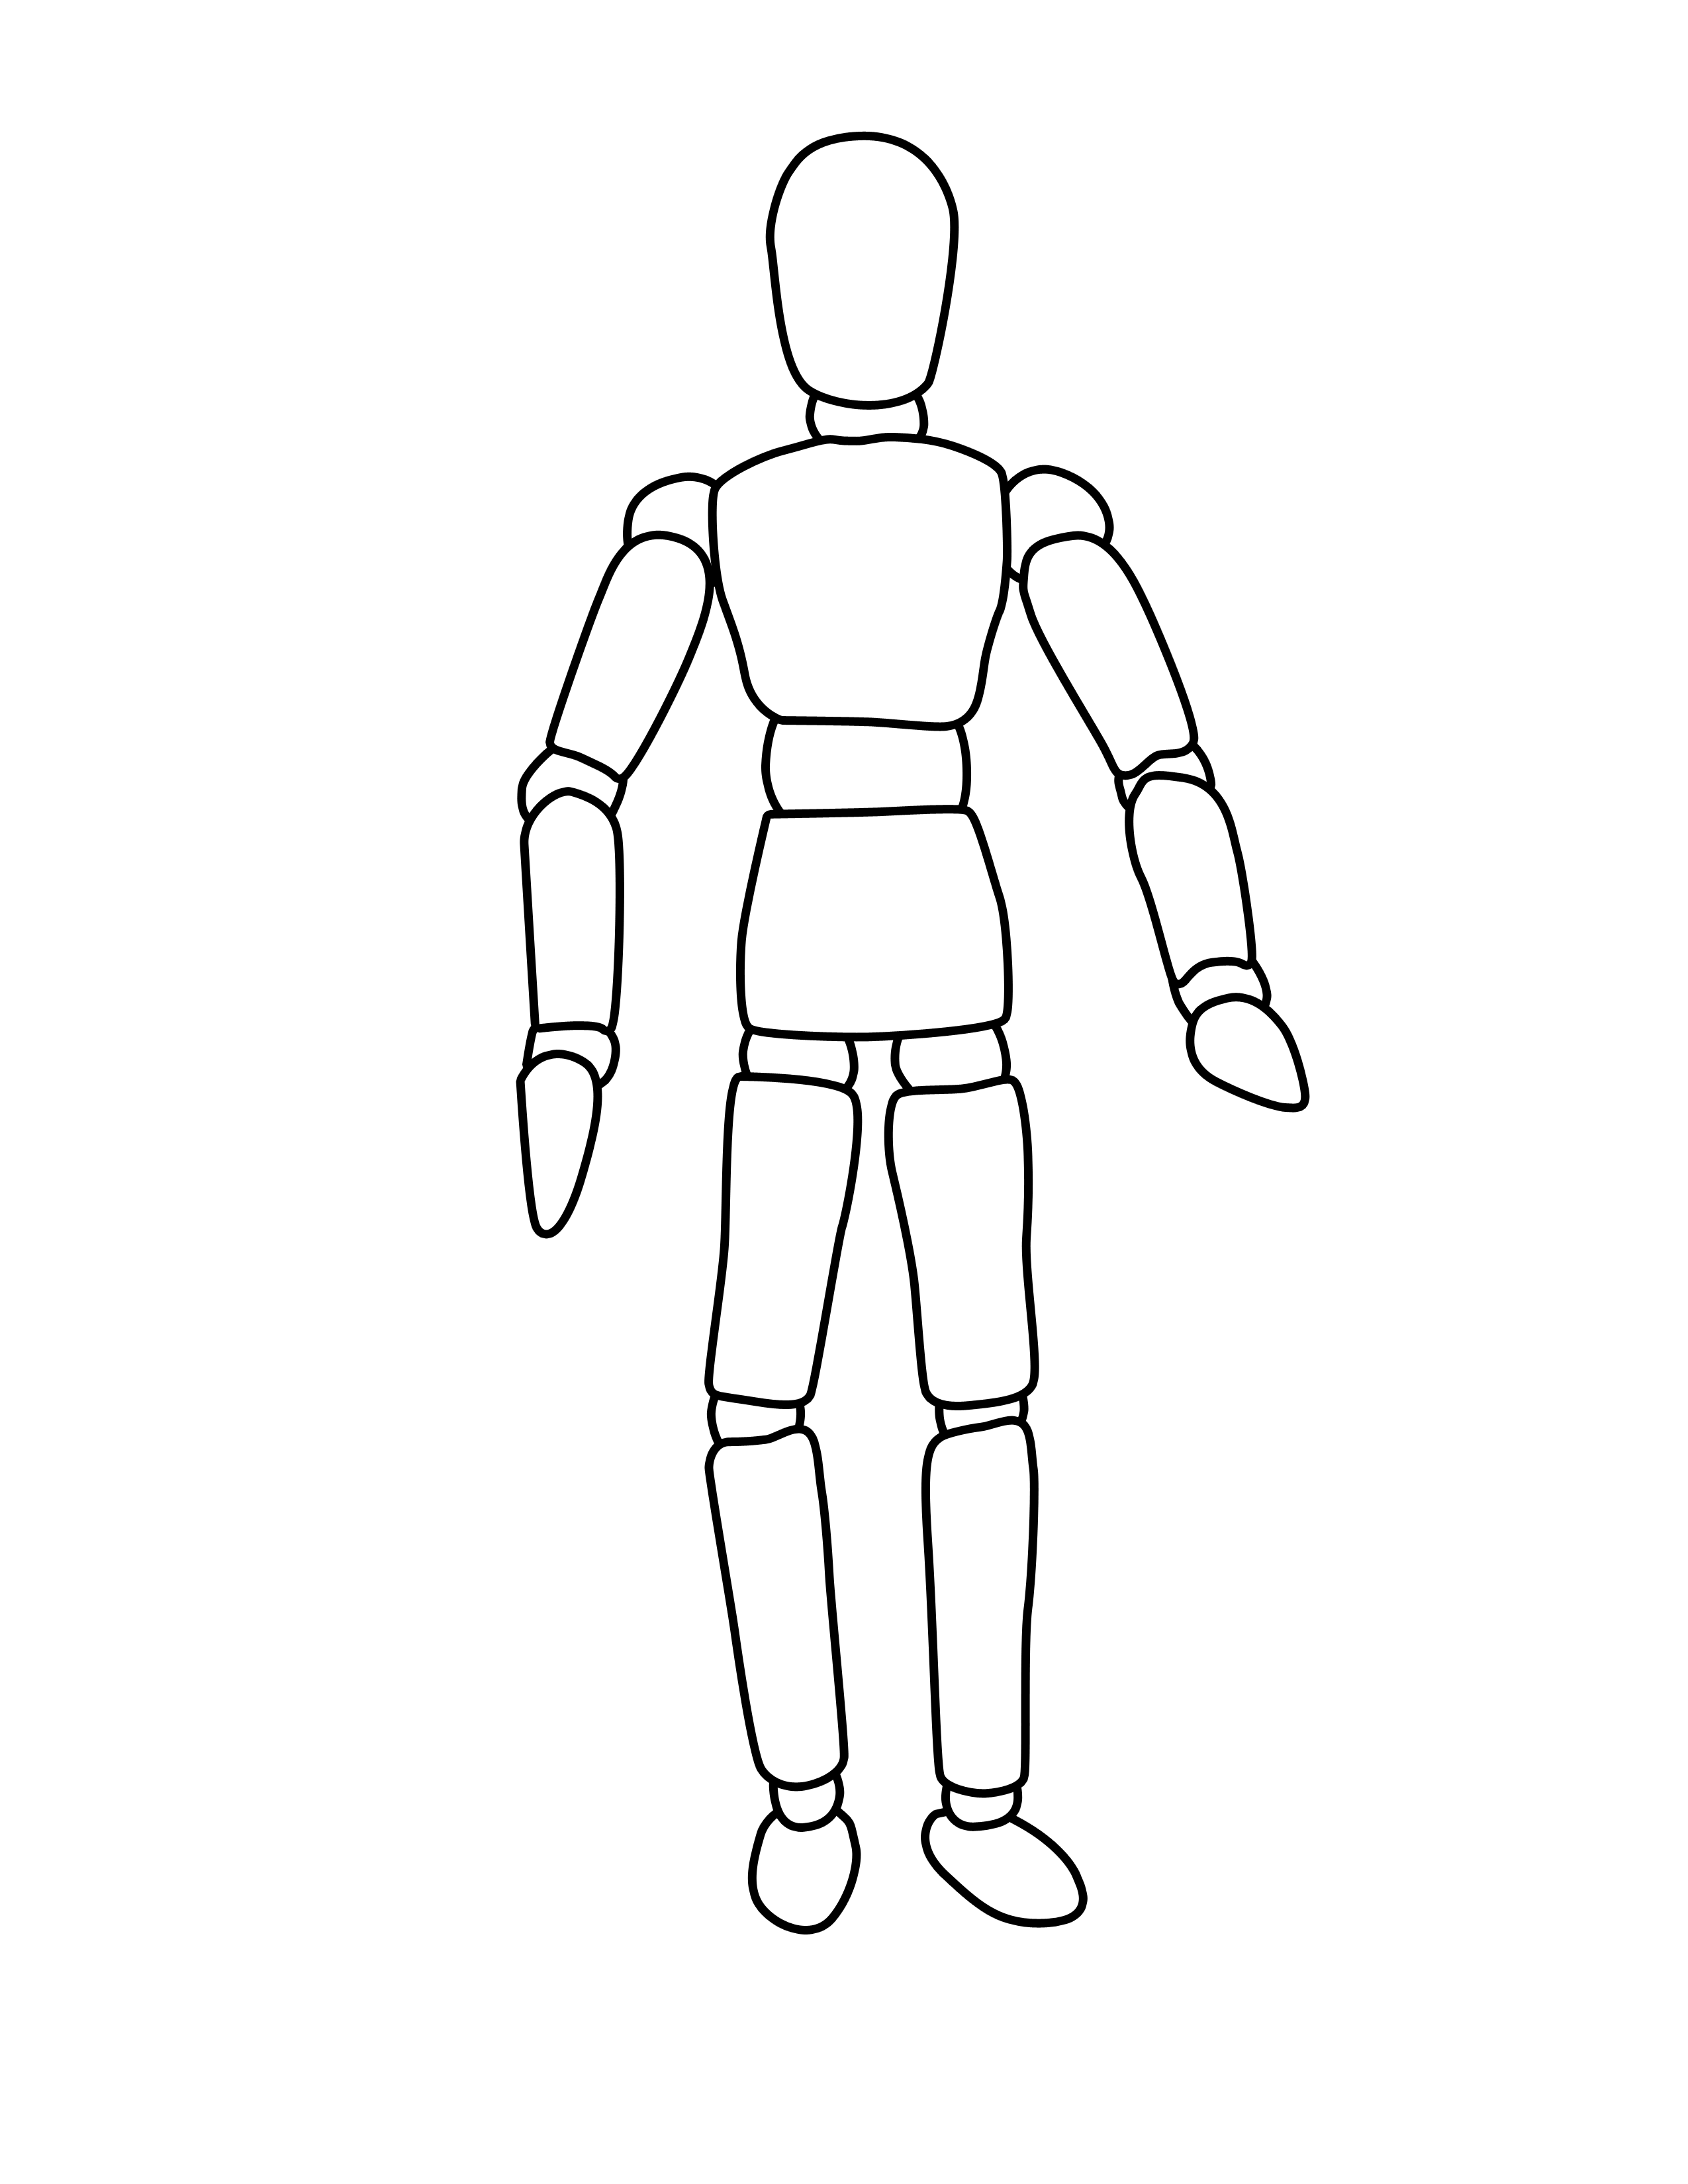 body outlines coloring page - Google Search | virtues within ...